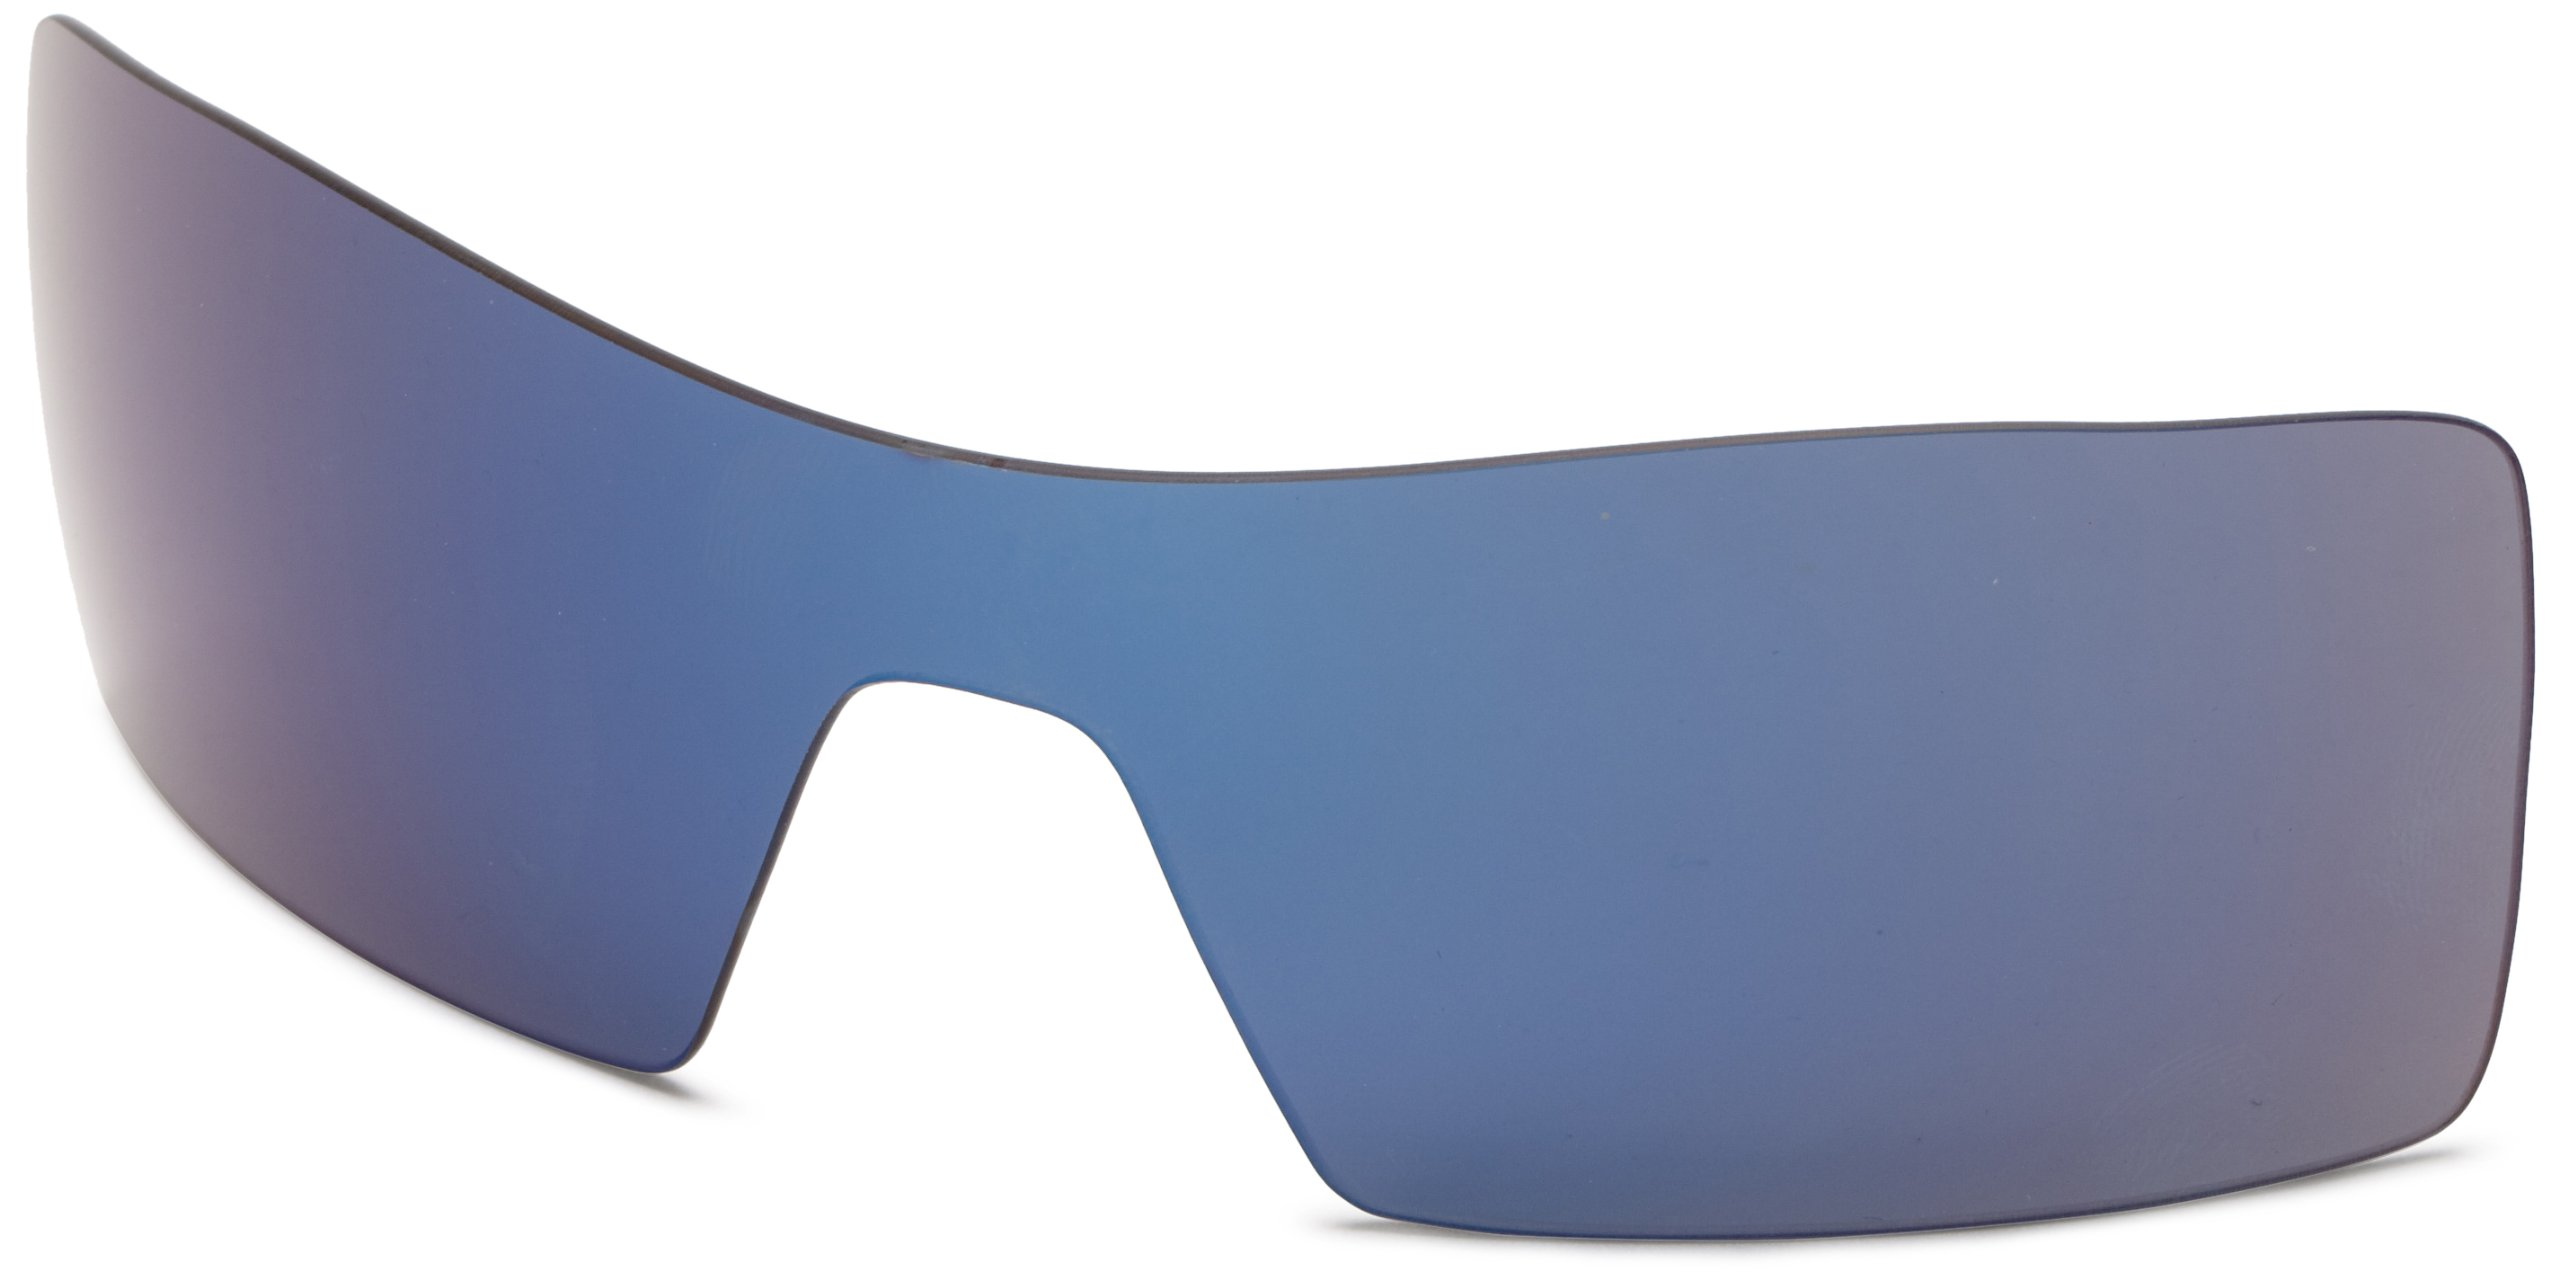 Oakley Men's Oil Rig Sunglasses Replacement Lens, Ice Iridium, 26 mm by Oakley